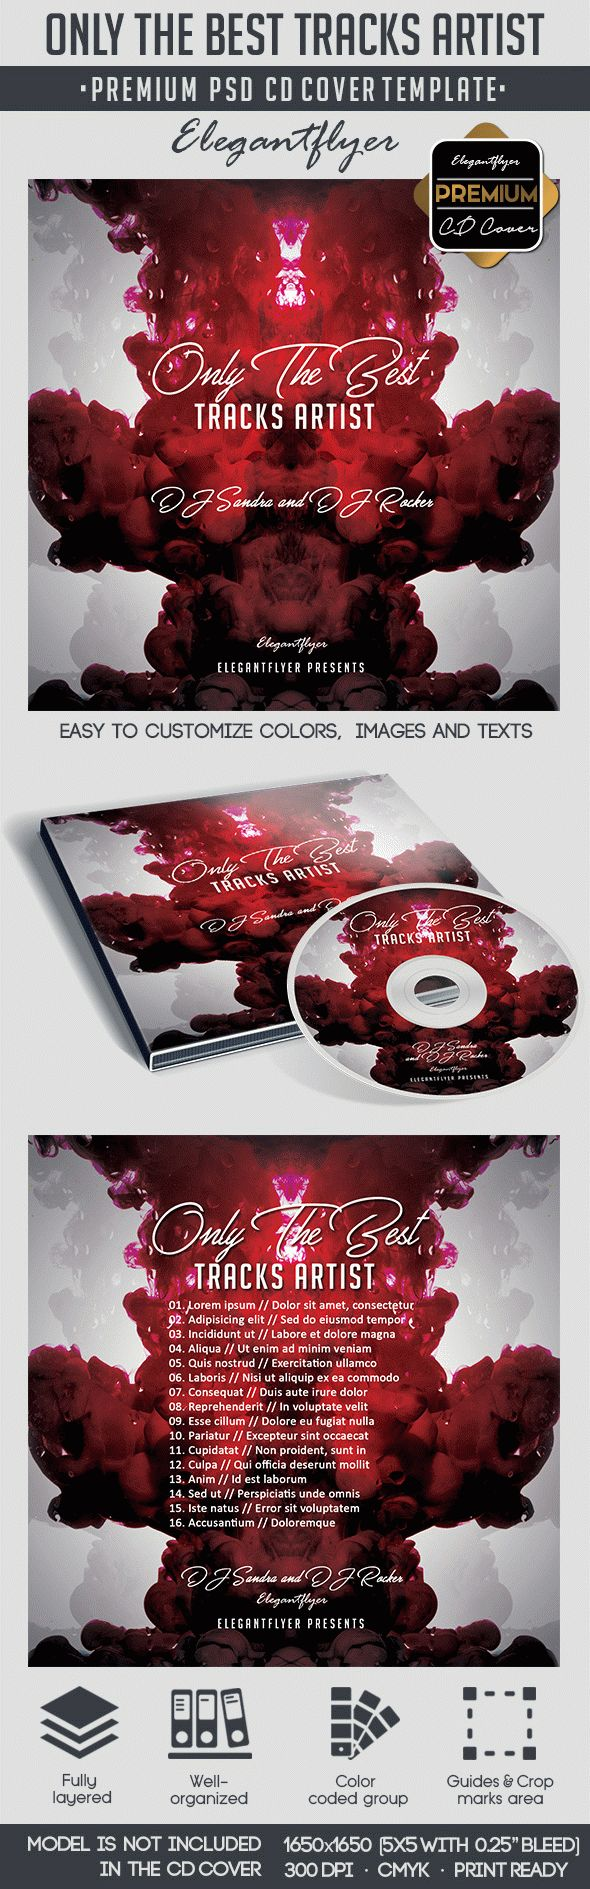 Only The Best Tracks Artist – Premium CD&DVD cover PSD Template